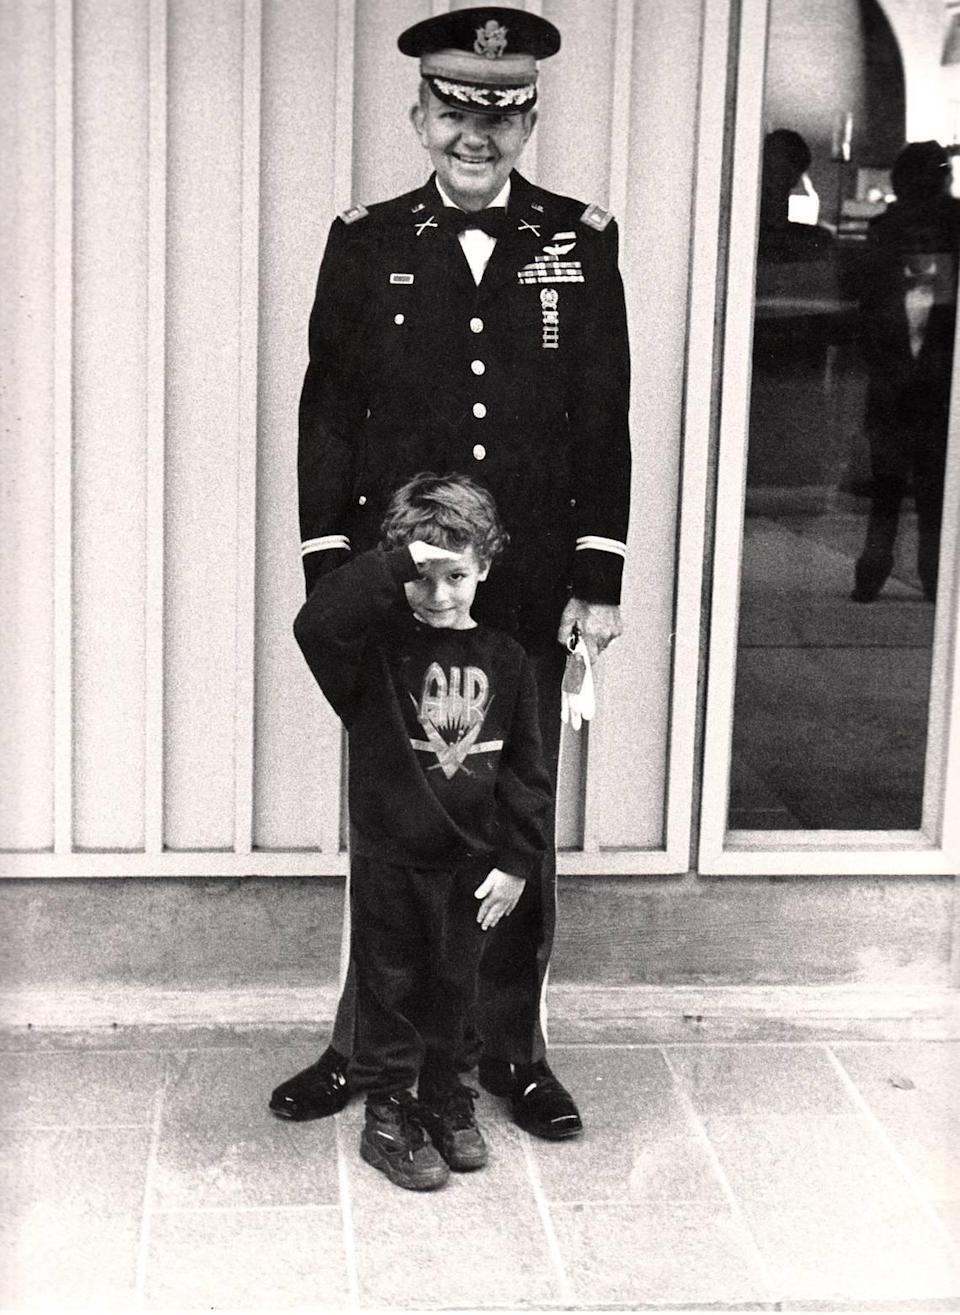 Jim Goetcheus stands in uniform with his grandchild, Ryan Sarfan, in 1994, at his daughter's wedding. Goetcheus served as a career military officer for more than 20 years, including two tours in Vietnam where he earned a Purple Heart and a Bronze Star. He wanted to have a funeral at Arlington National Cemetery.